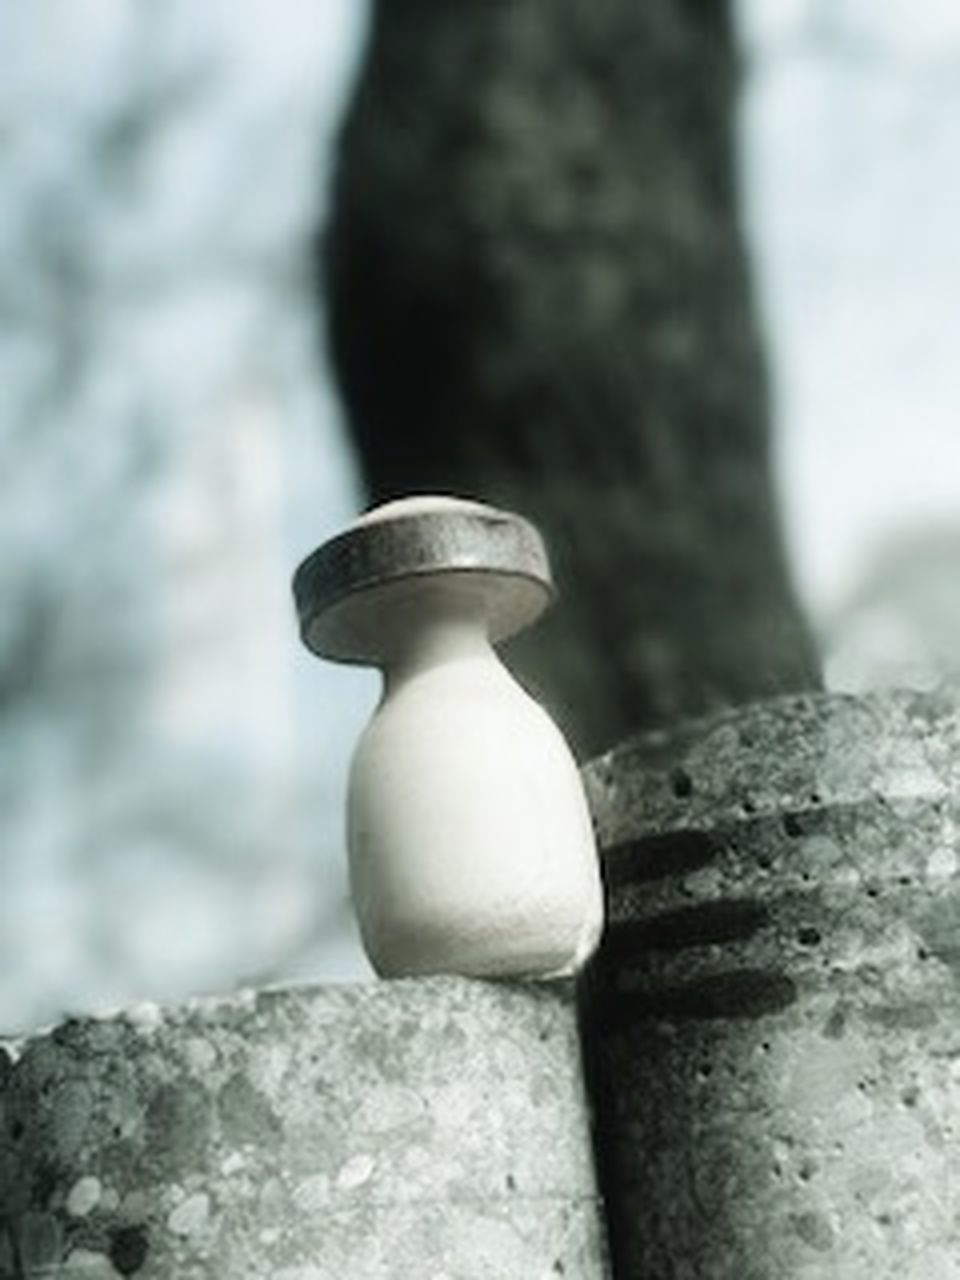 close-up, stone material, focus on foreground, marble, no people, skill, outdoors, day